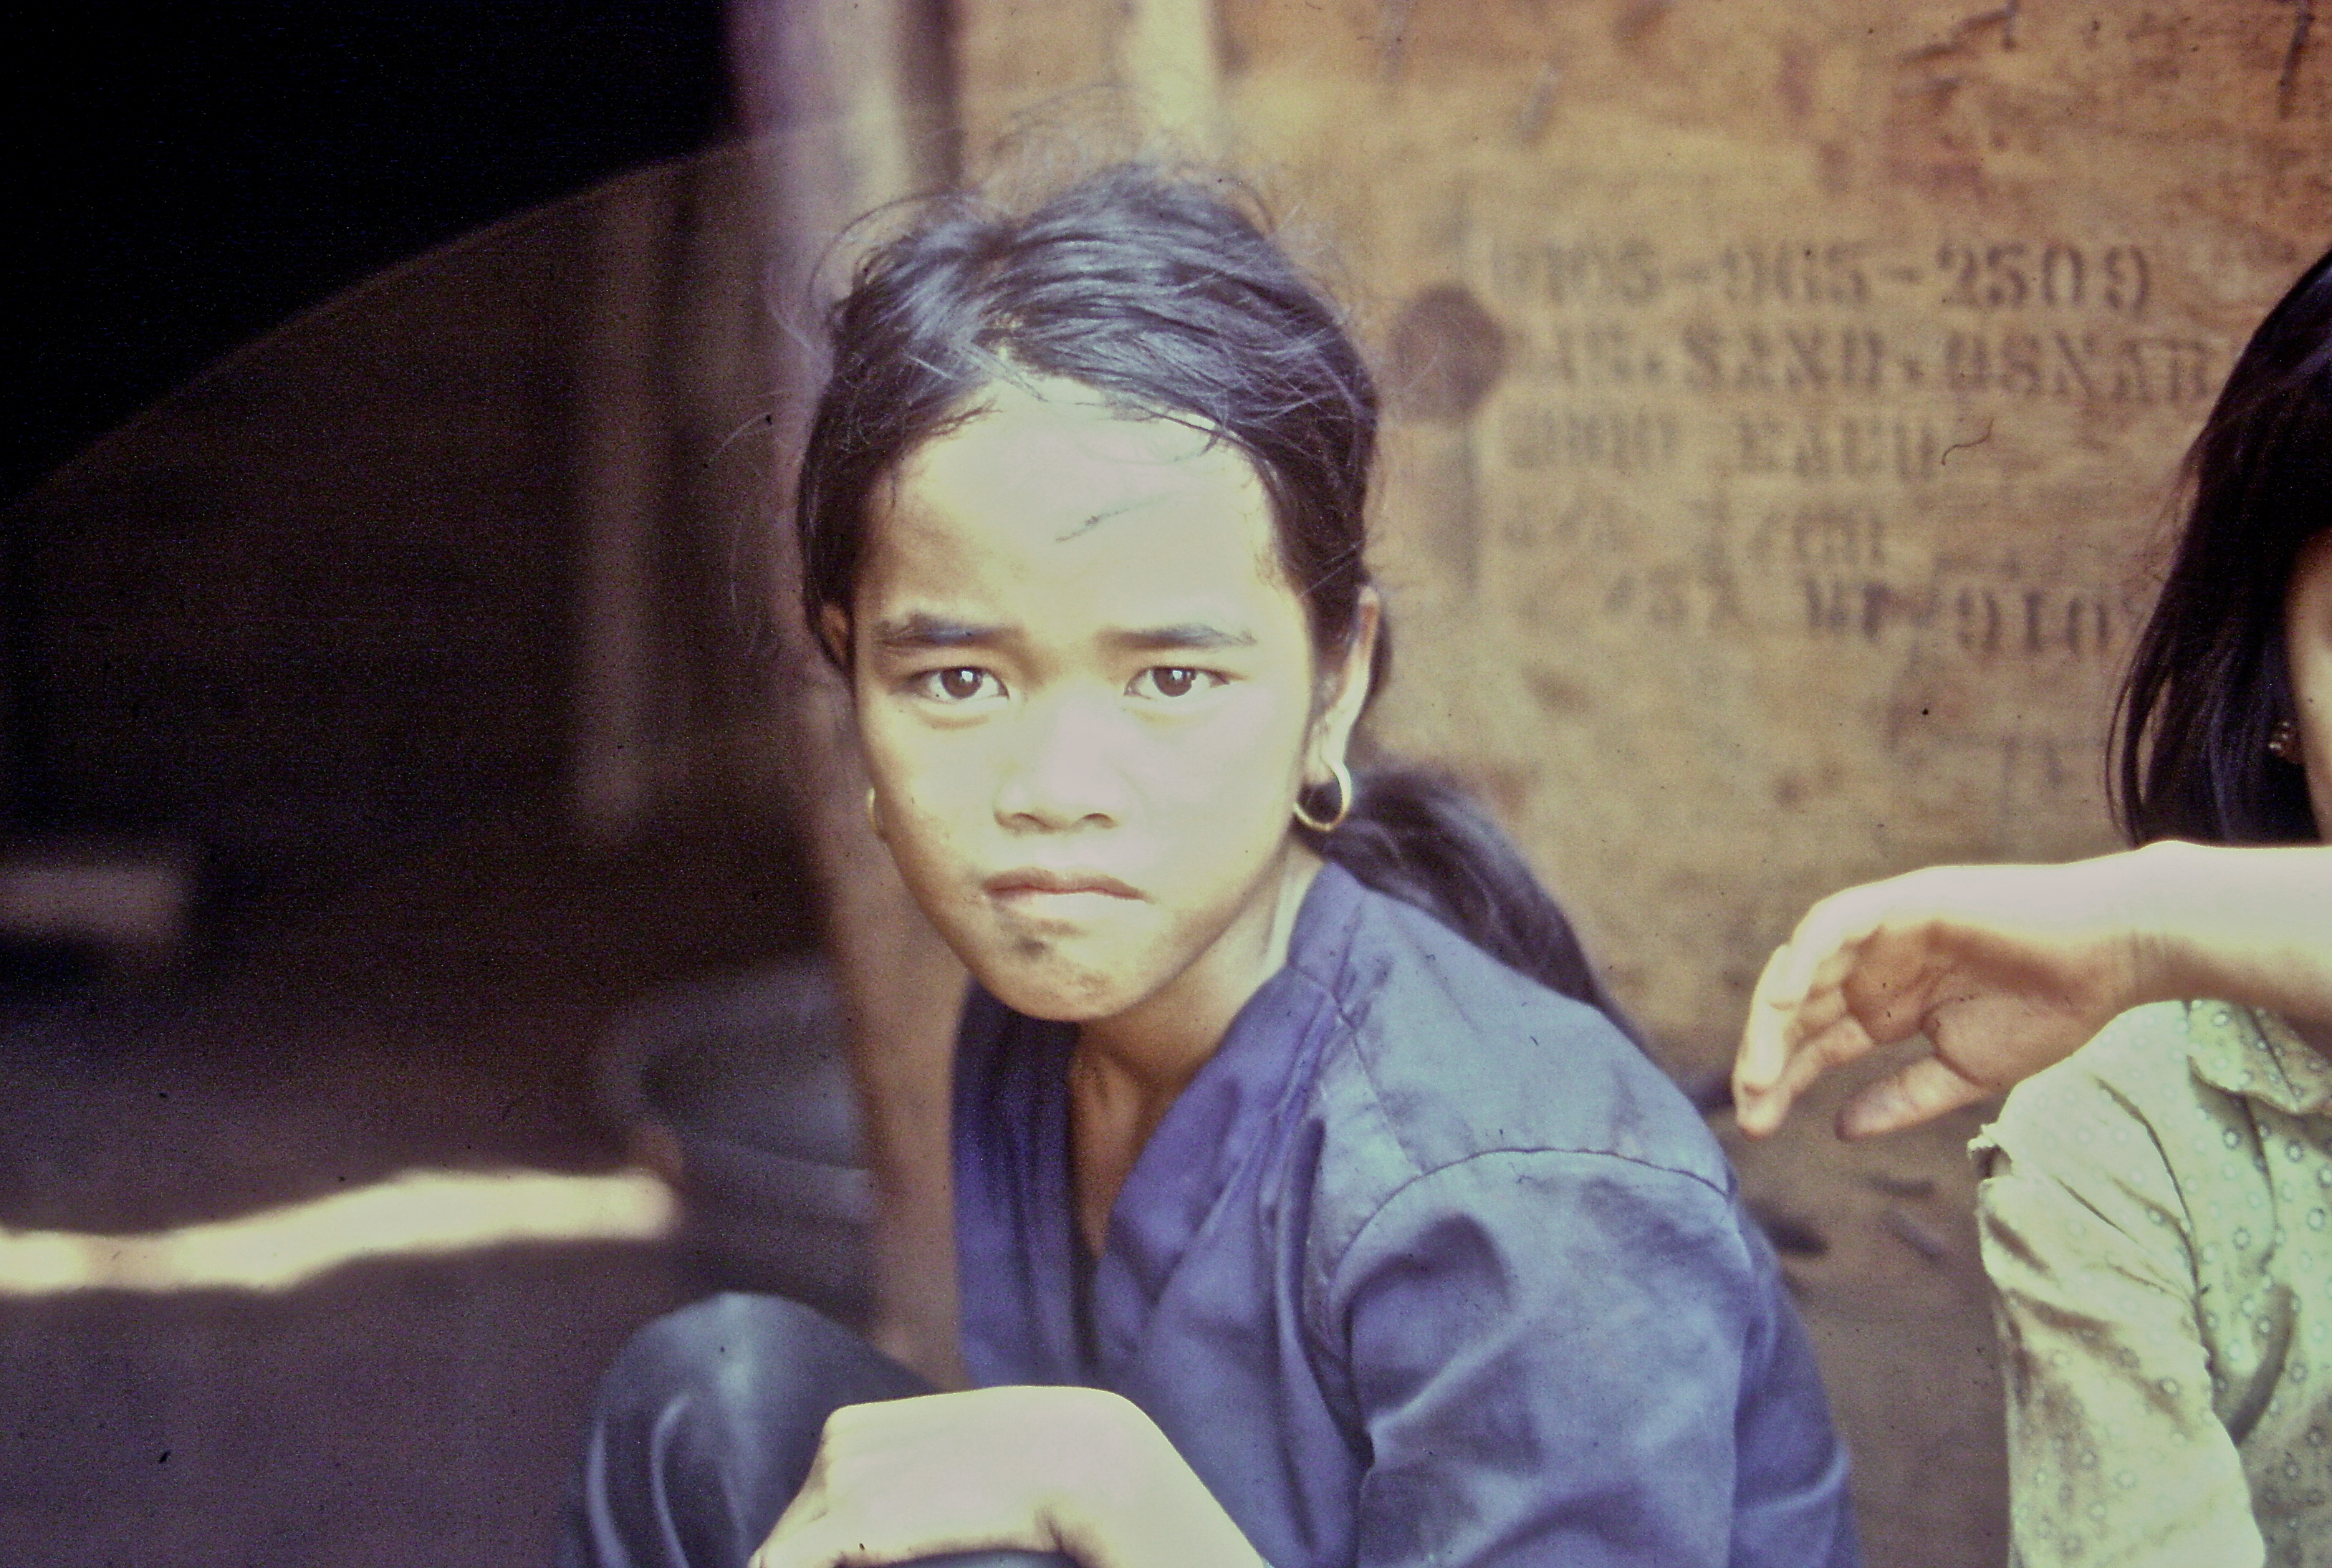 A young Asian woman looking sternly into the camera.